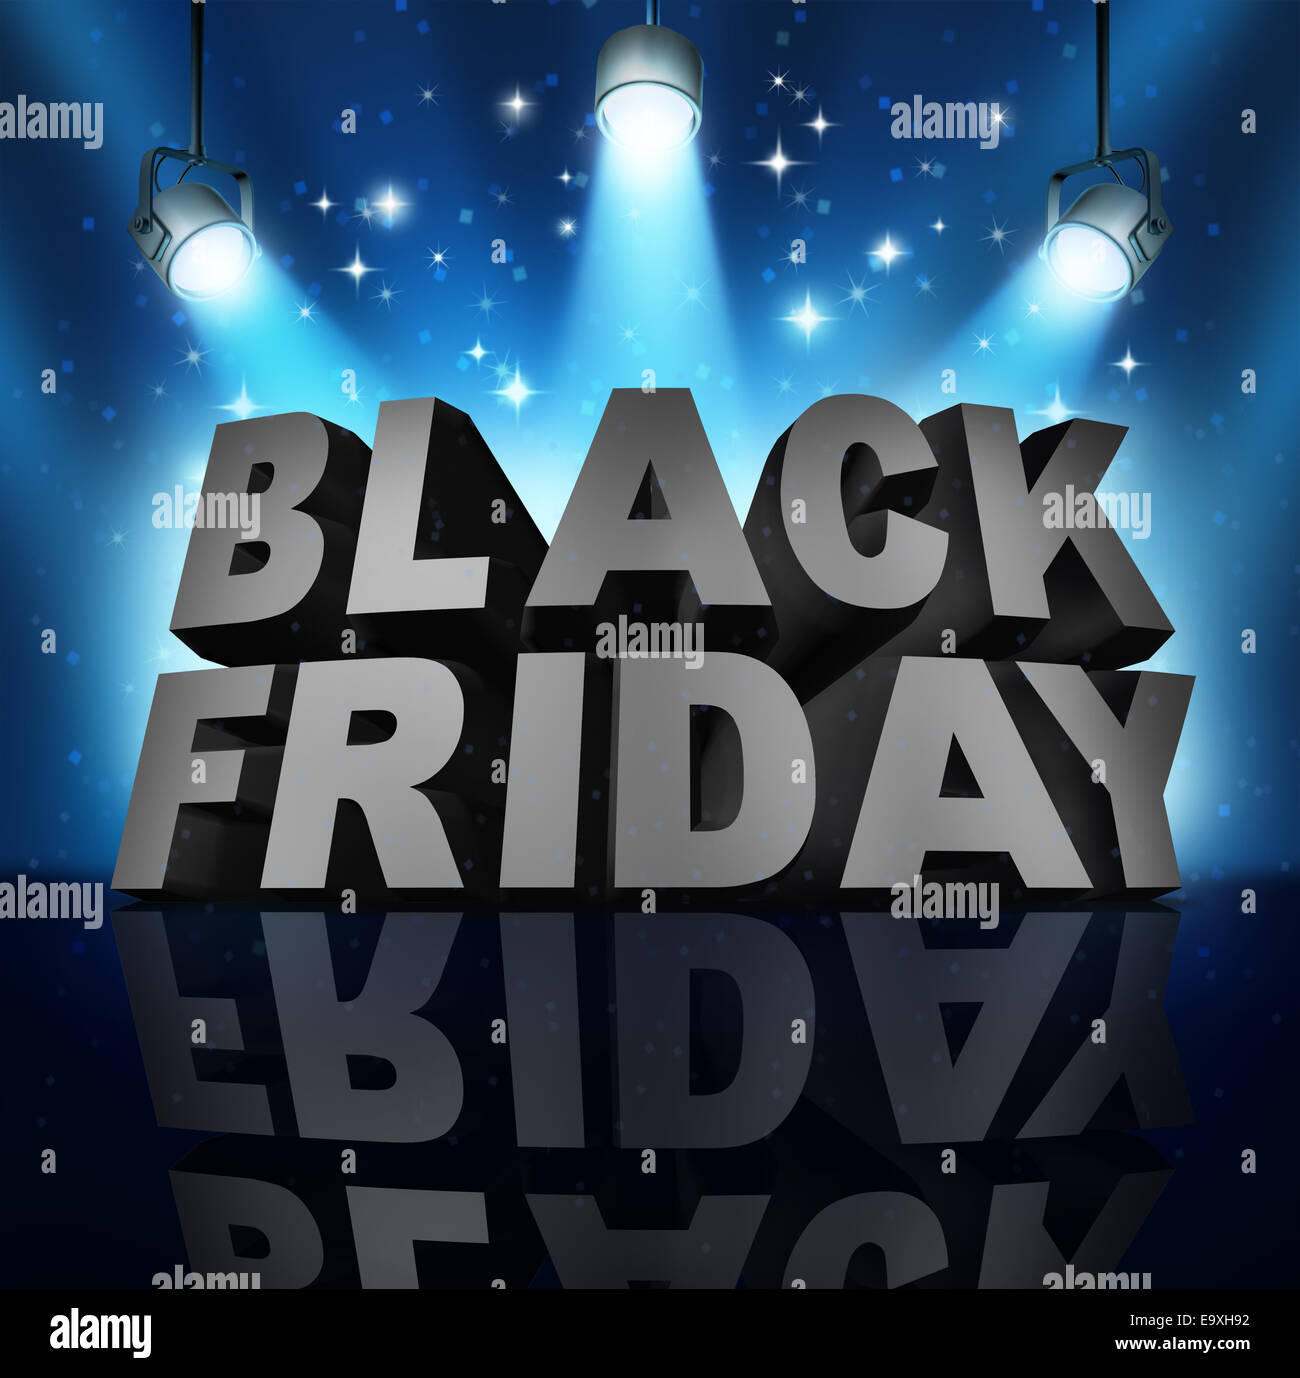 Black friday sale banner sign as three dimensional text on a stage with spot lights and sparkles as a party to celebrate - Stock Image